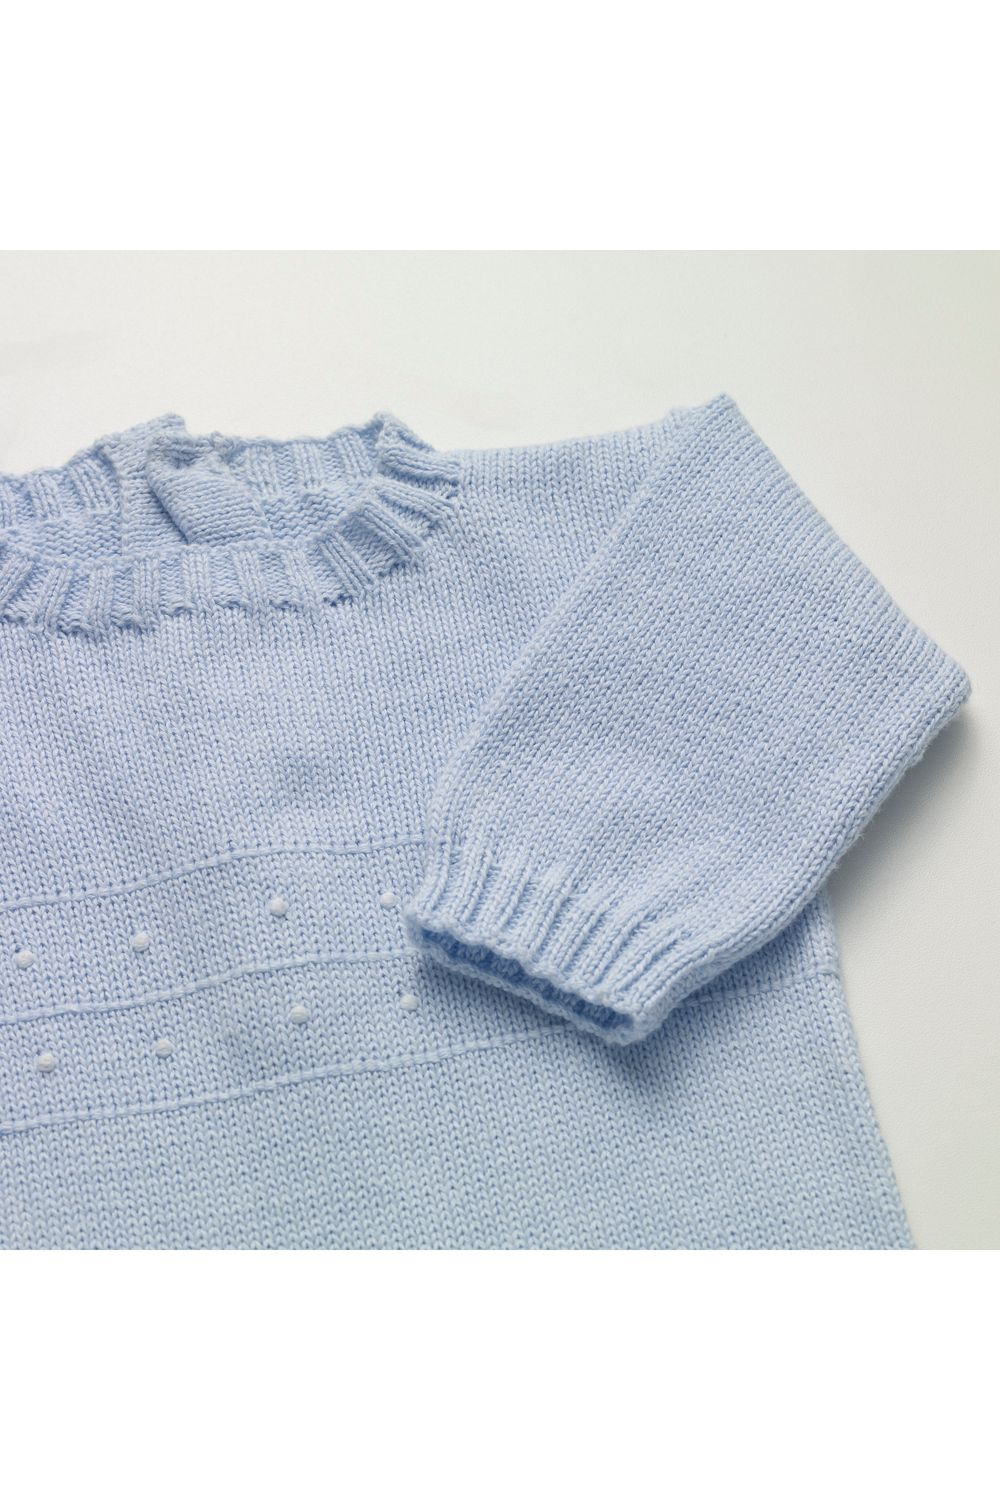 0555020145_400_3-MACACAO-TRICOT-TOMMY